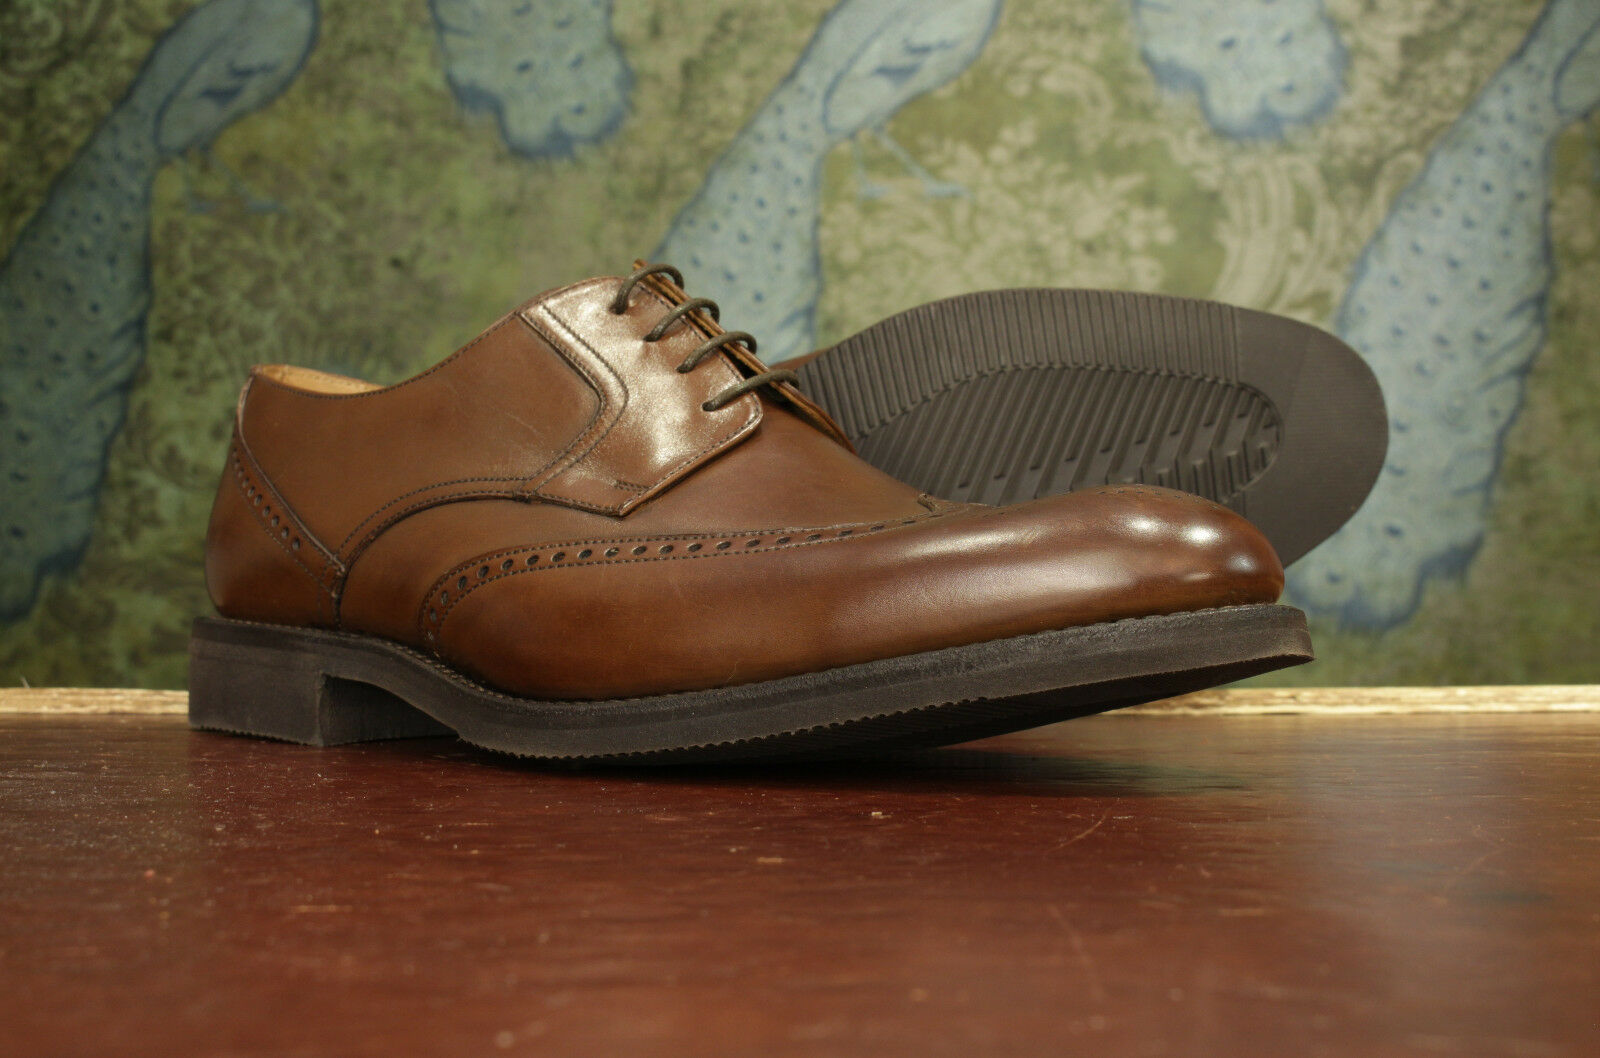 Loake Sirius Brown Lightweight Derby Shoes 11F - New Seconds RRP £160 (16605)